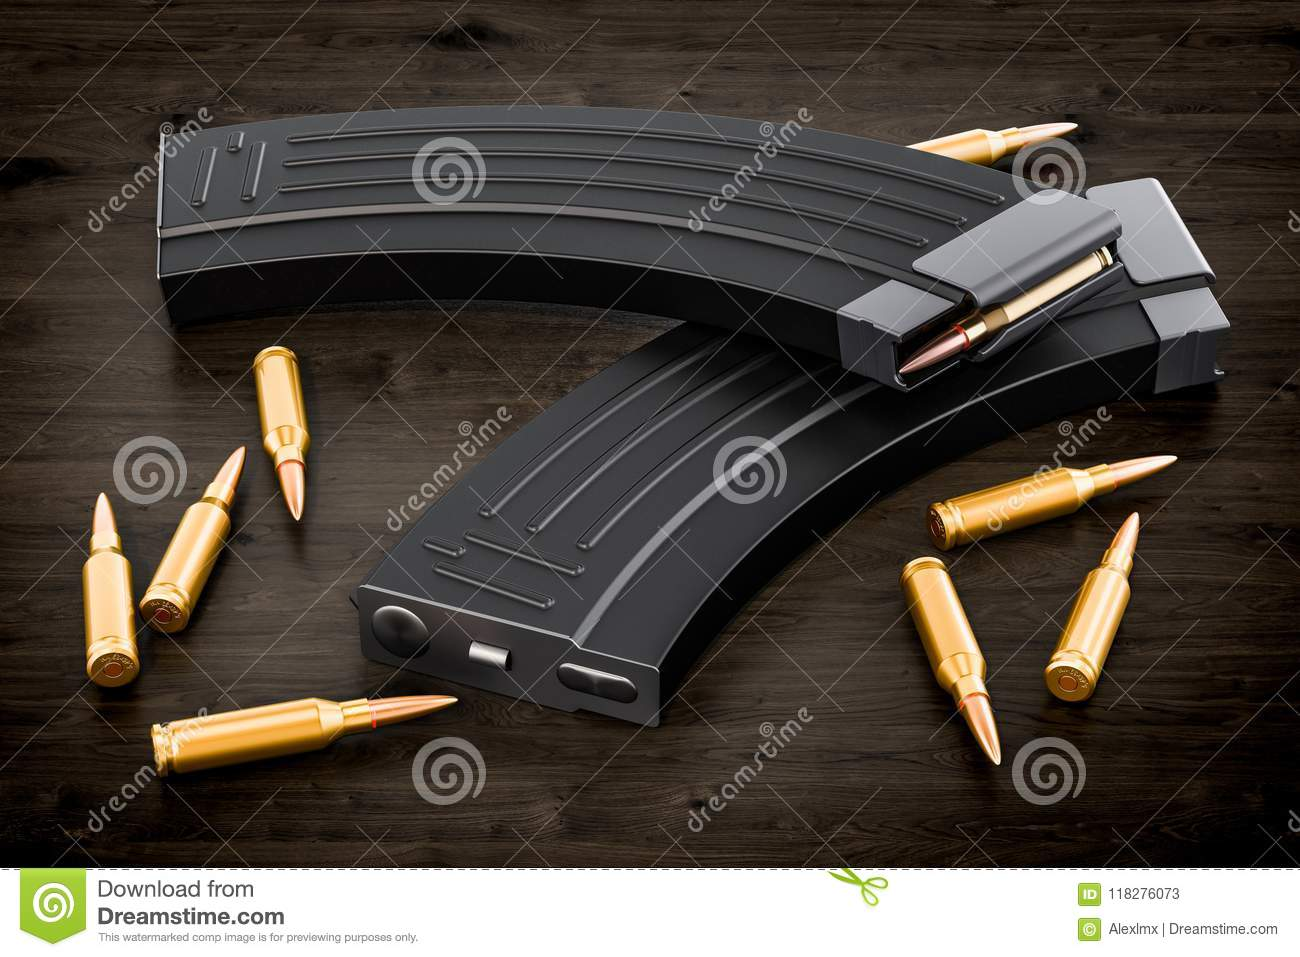 Magazine from assault rifle and bullets on the wooden table, 3D